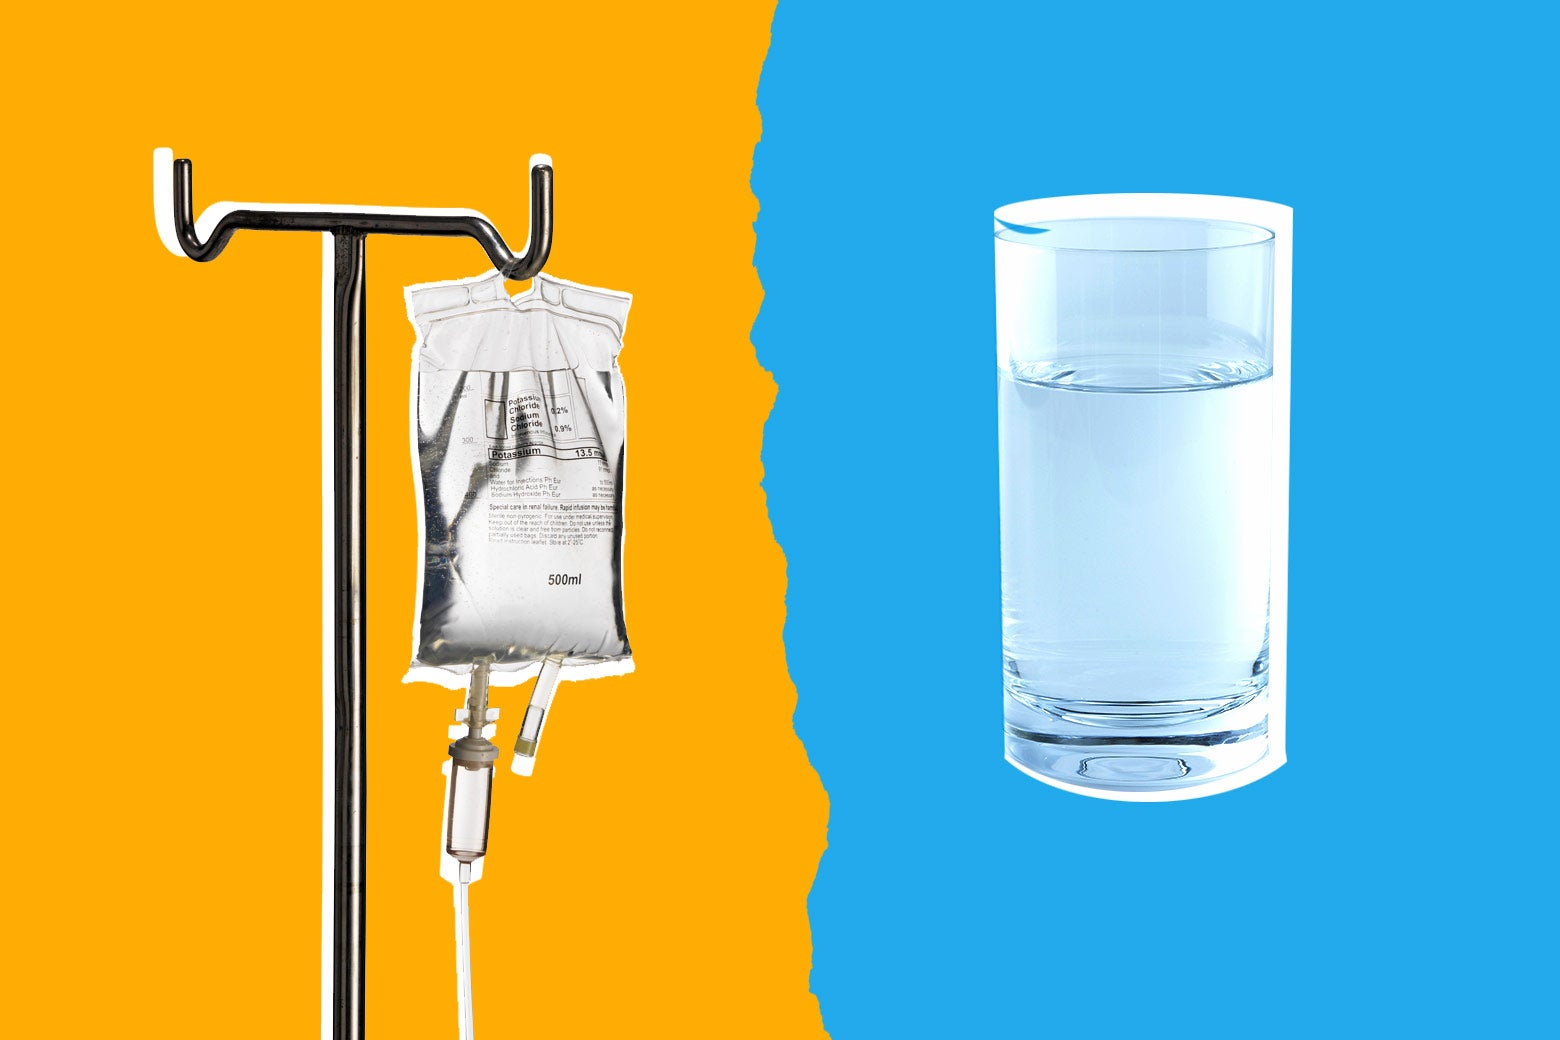 Photo illustration: An IV bag and a glass of water. Photo illustration by Slate. Photos by Thinkstock.